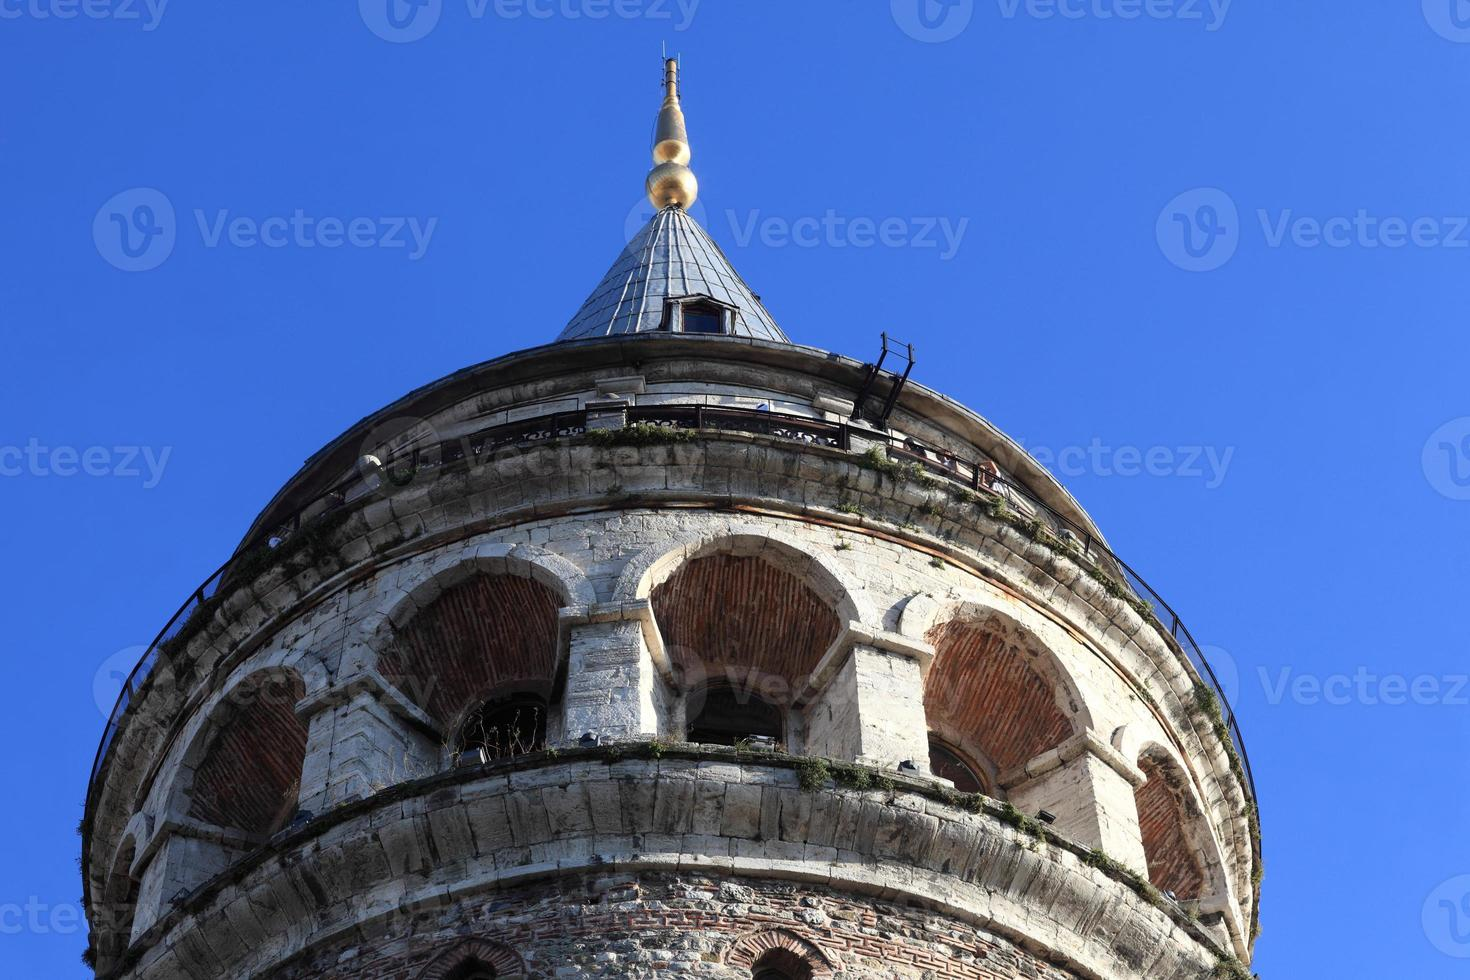 Details of Galata Tower photo